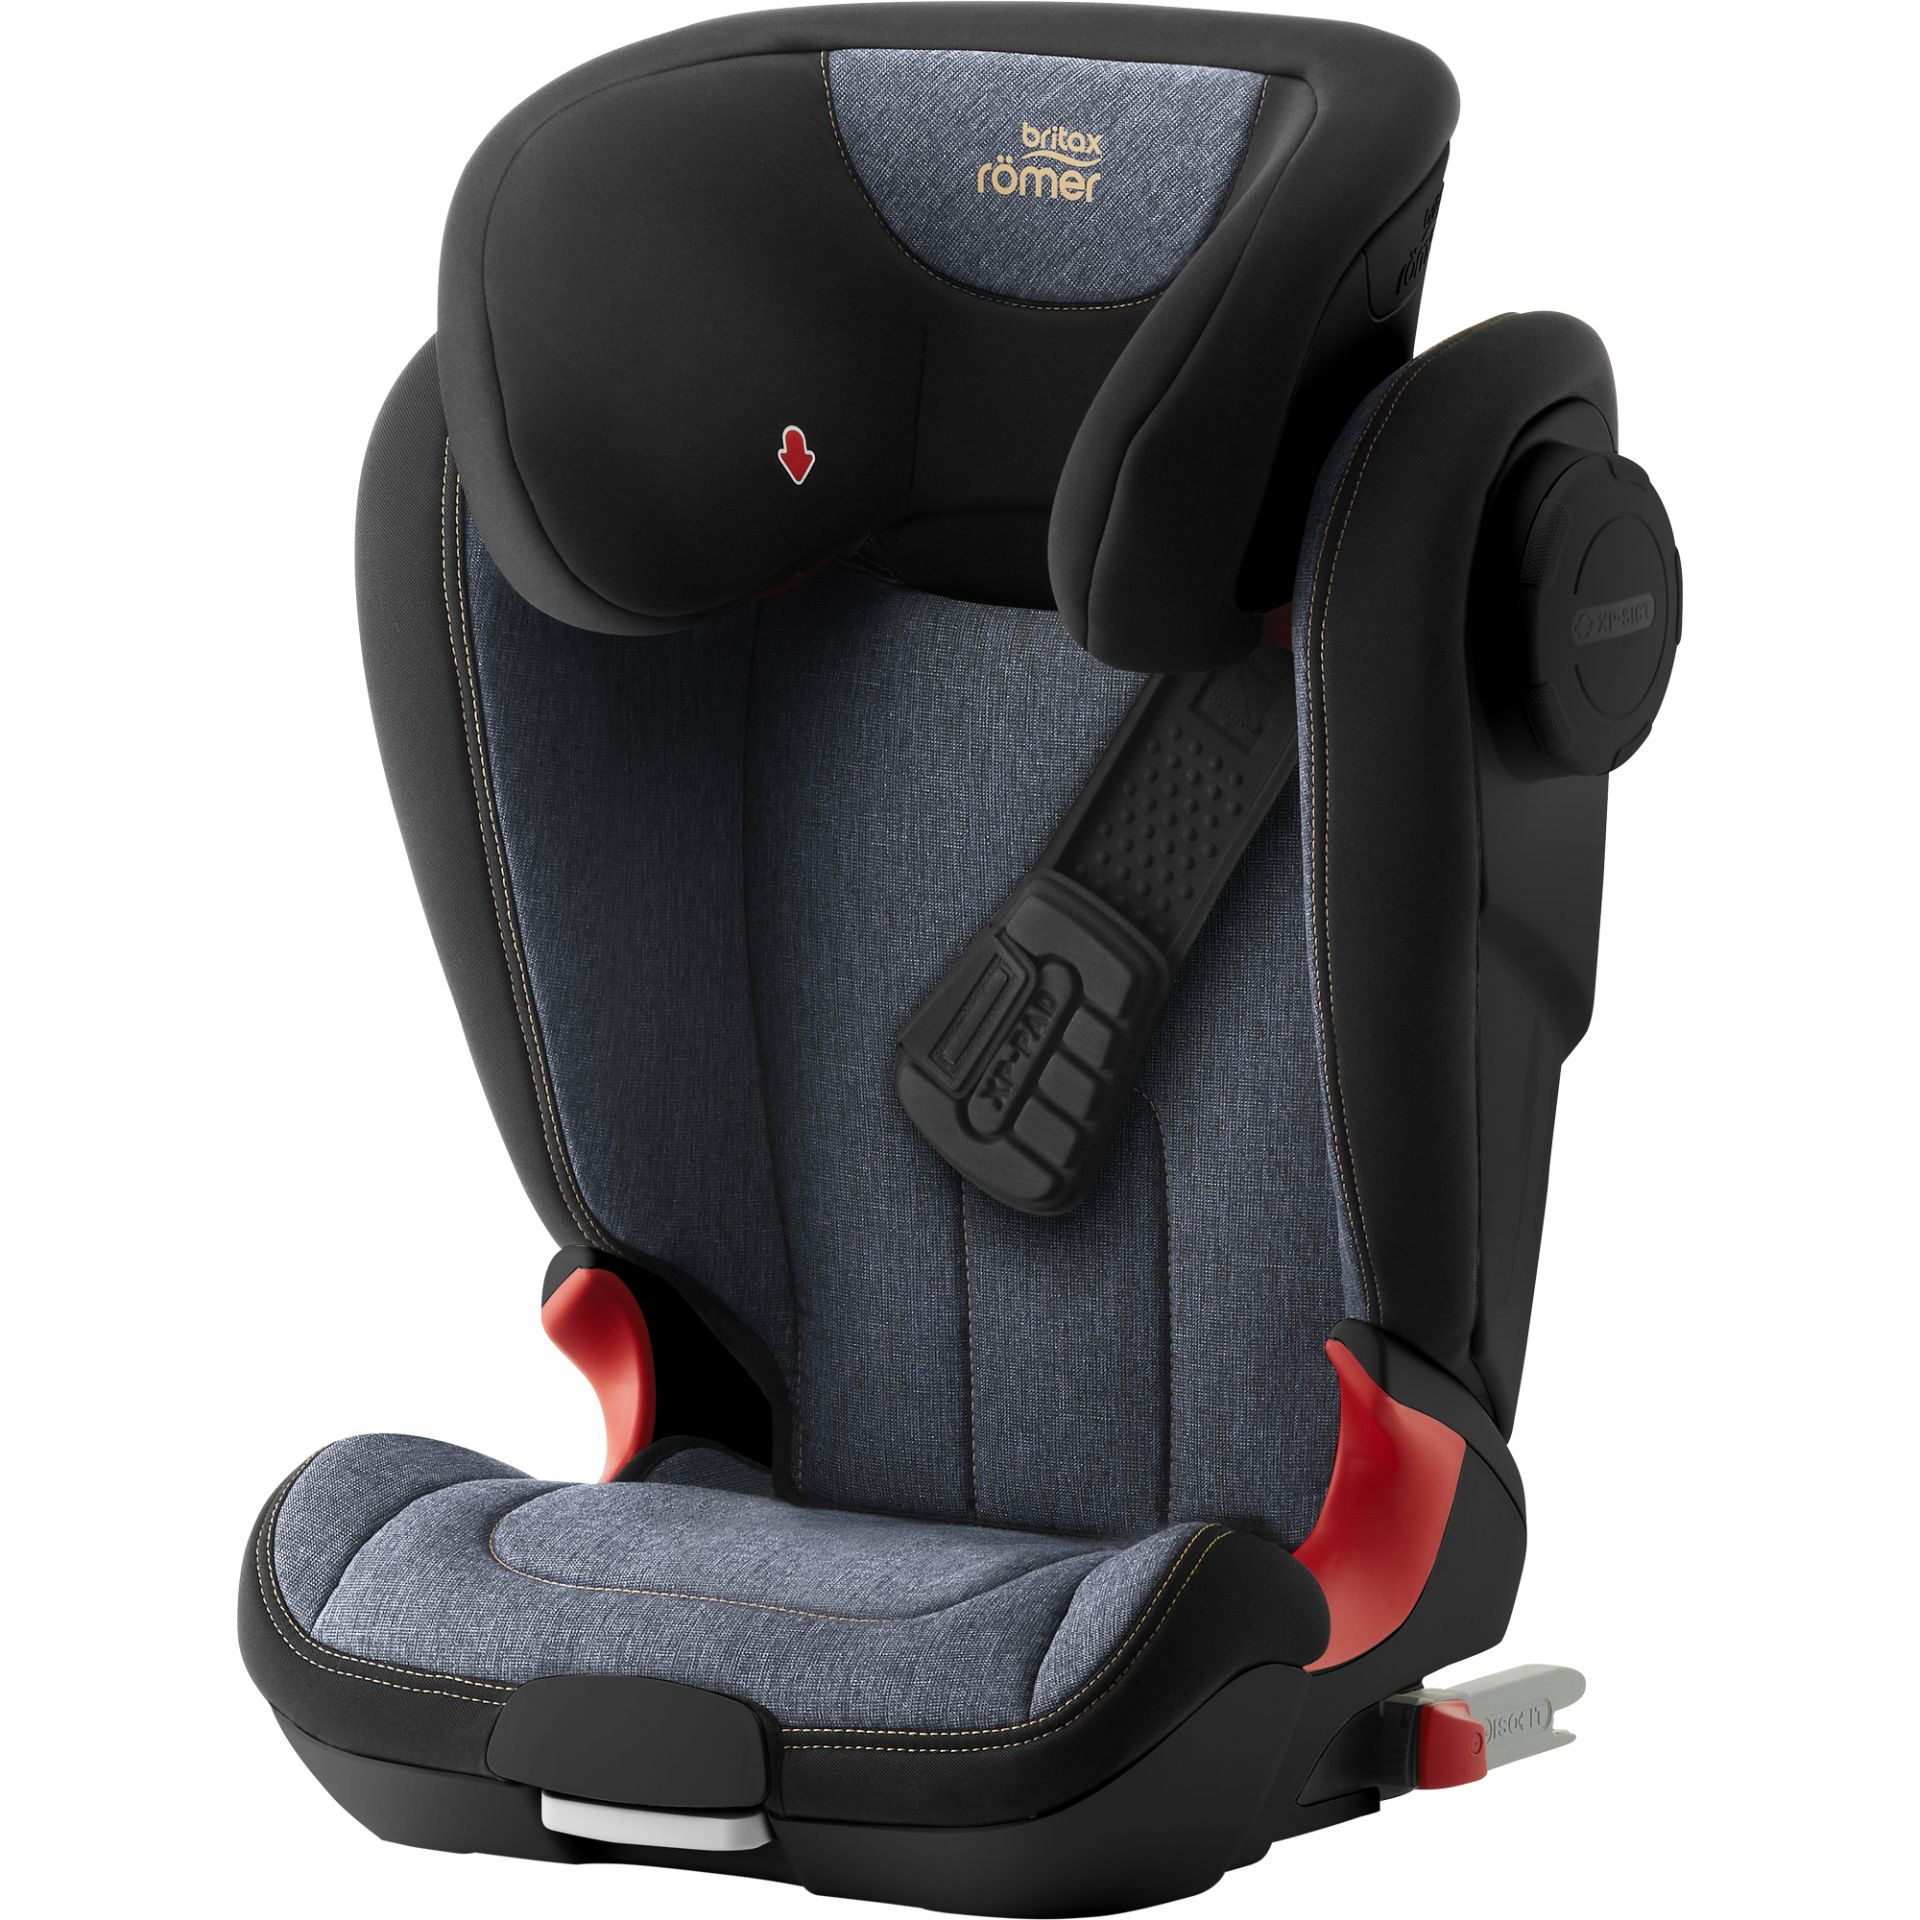 britax r mer child car seat kidfix xp sict black series 2018 blue marble buy at kidsroom. Black Bedroom Furniture Sets. Home Design Ideas